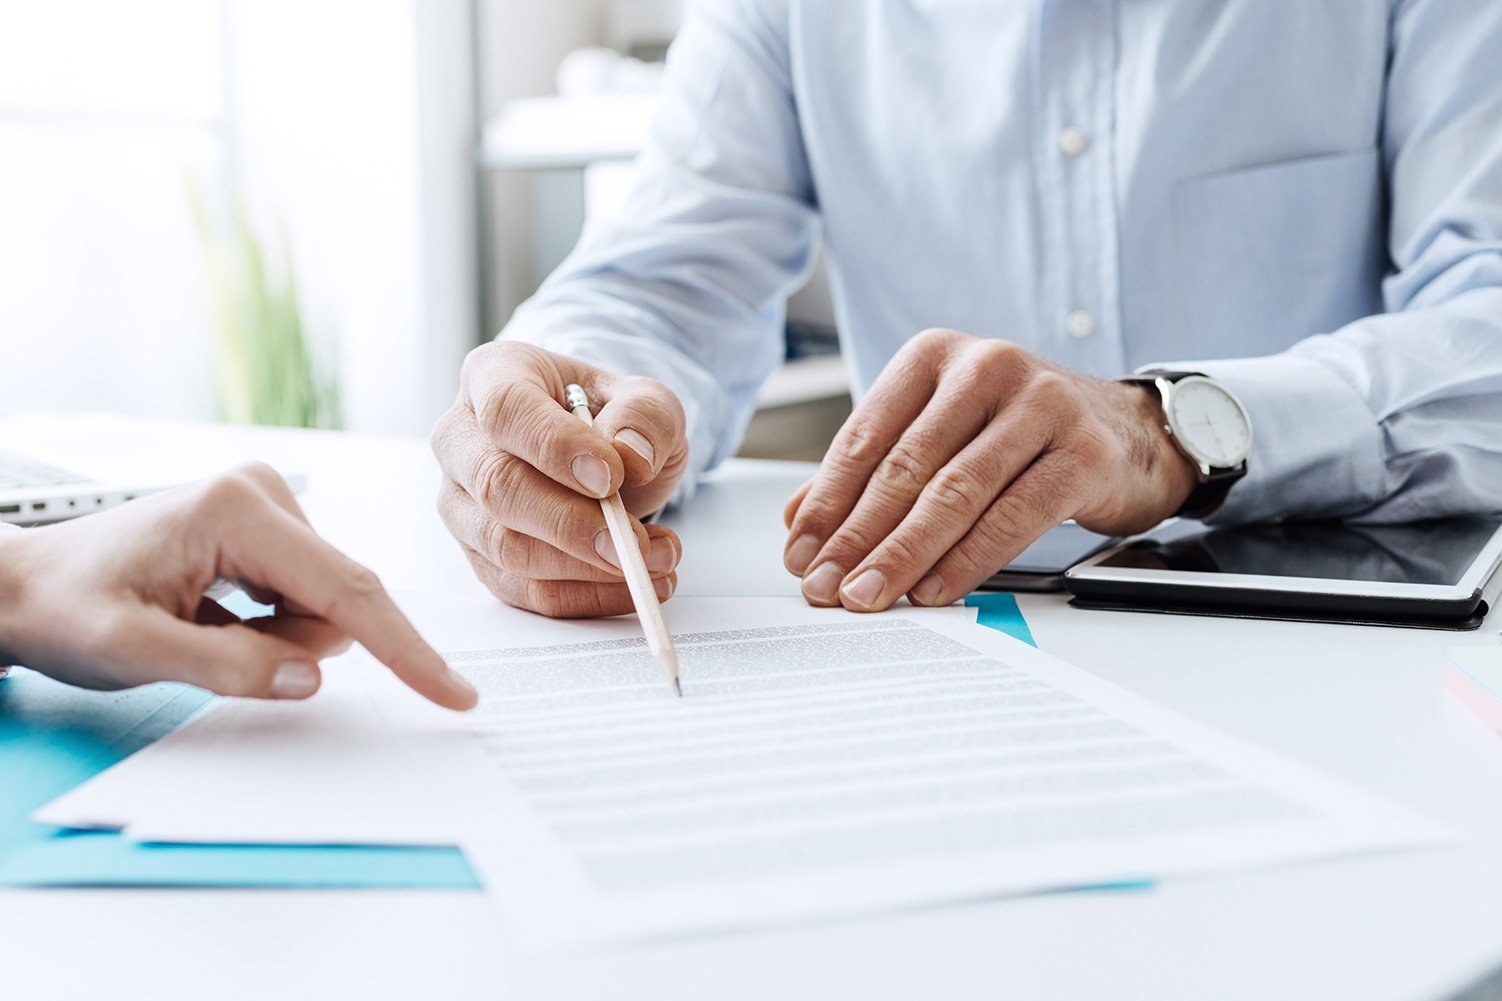 Certificate Holders & Additional Insureds: What's the Difference?